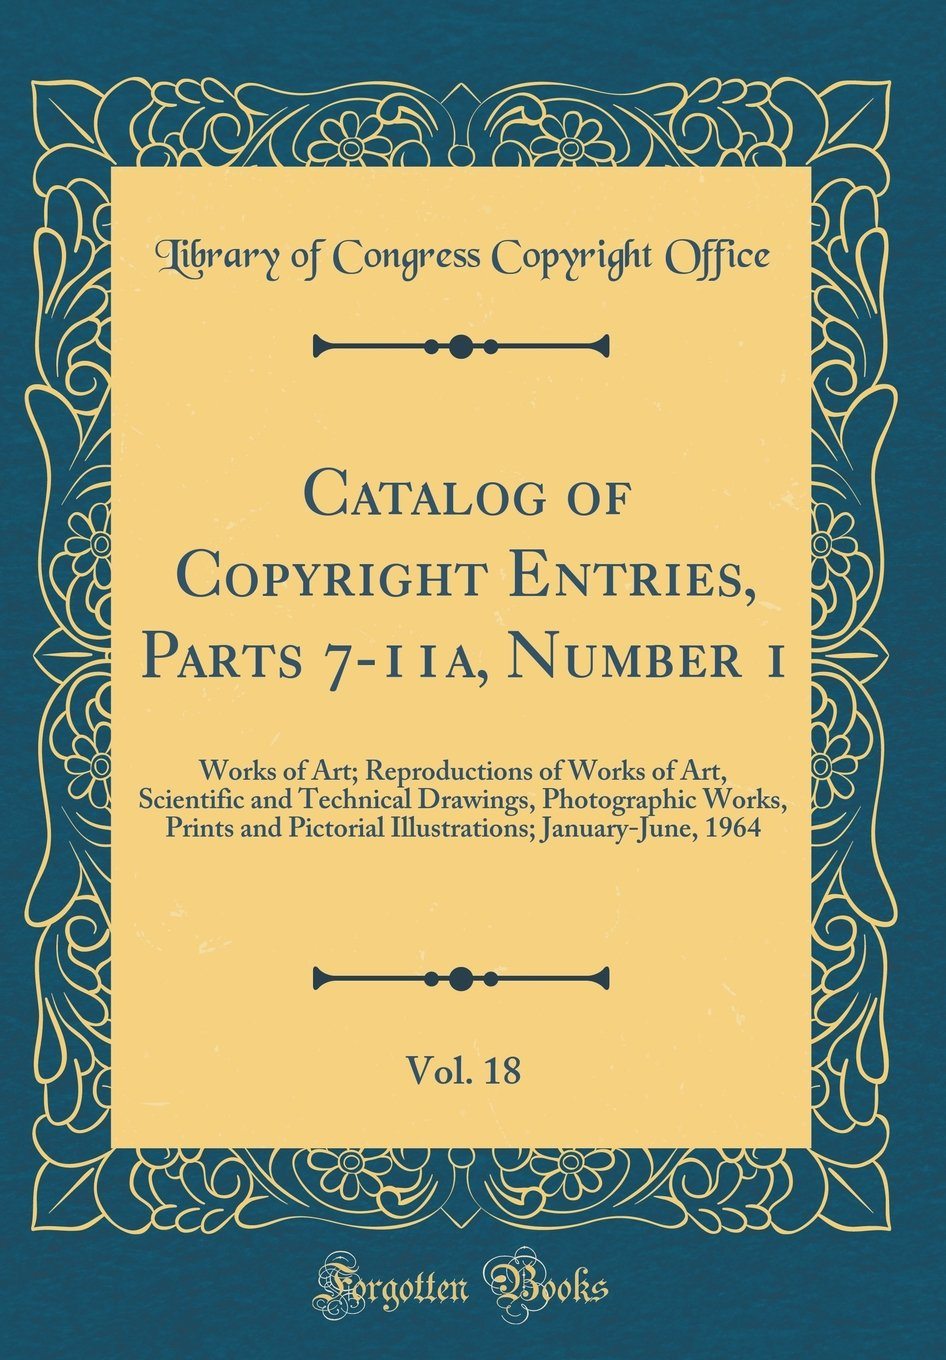 Download Catalog of Copyright Entries, Parts 7-11a, Number 1, Vol. 18: Works of Art; Reproductions of Works of Art, Scientific and Technical Drawings, ... January-June, 1964 (Classic Reprint) pdf